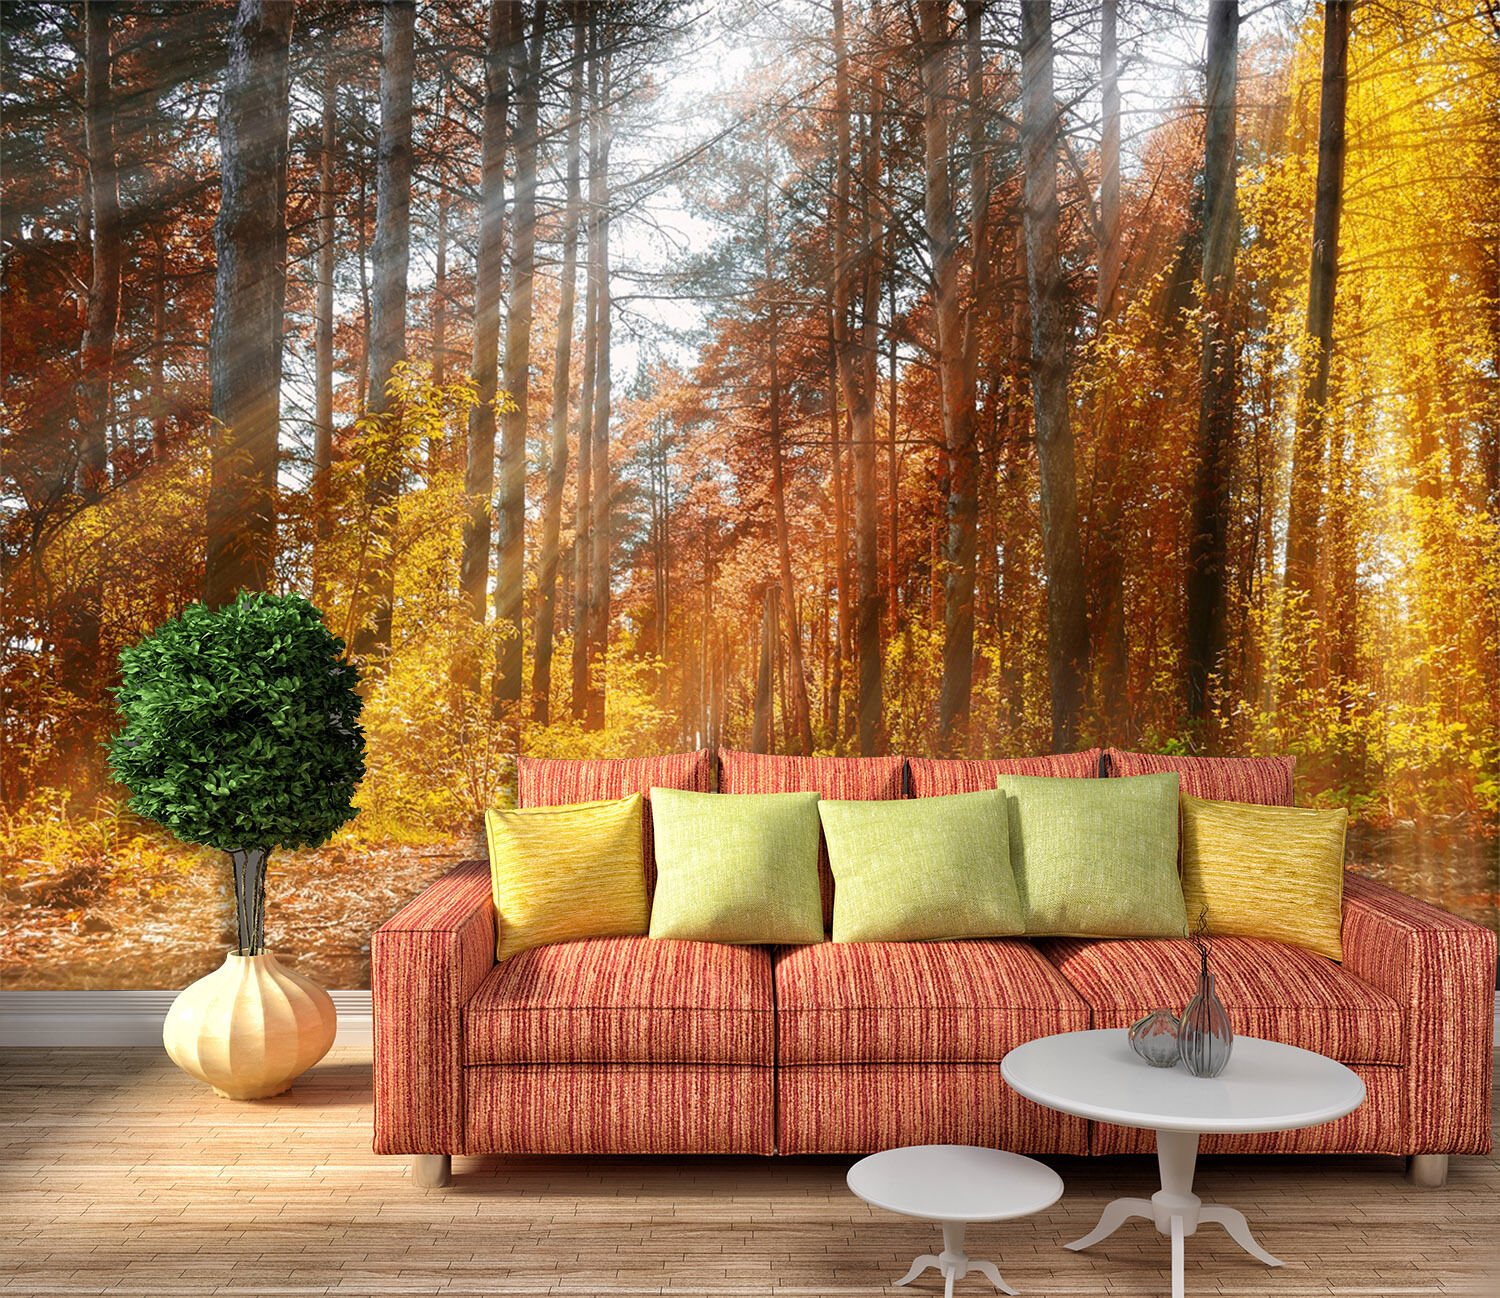 3D Jungle Sunshine 94 Wall Paper Wall Print Decal Wall Deco Indoor Wall